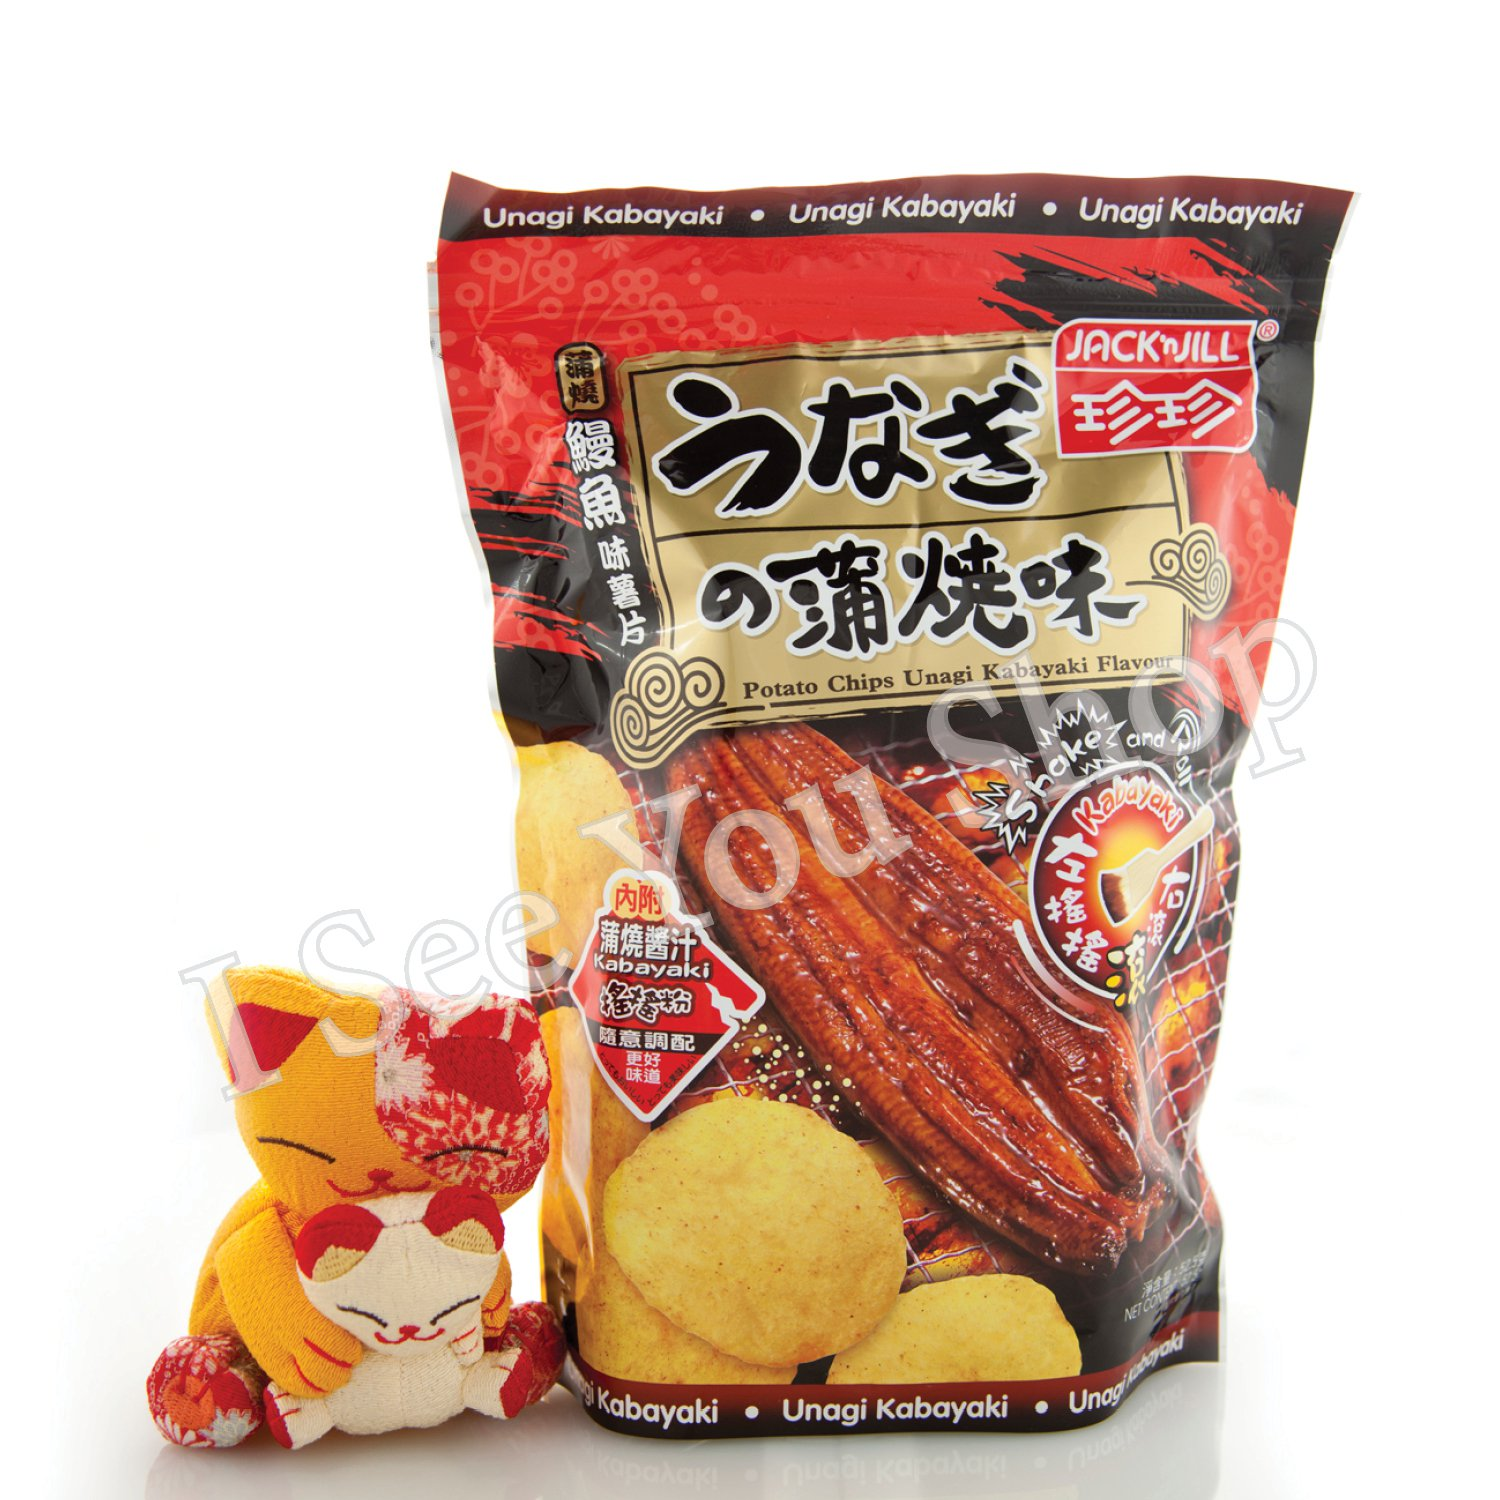 ����鰻���� Jack'n Jill Unagi Kabayaki Flavored Potato Chips 52.5g